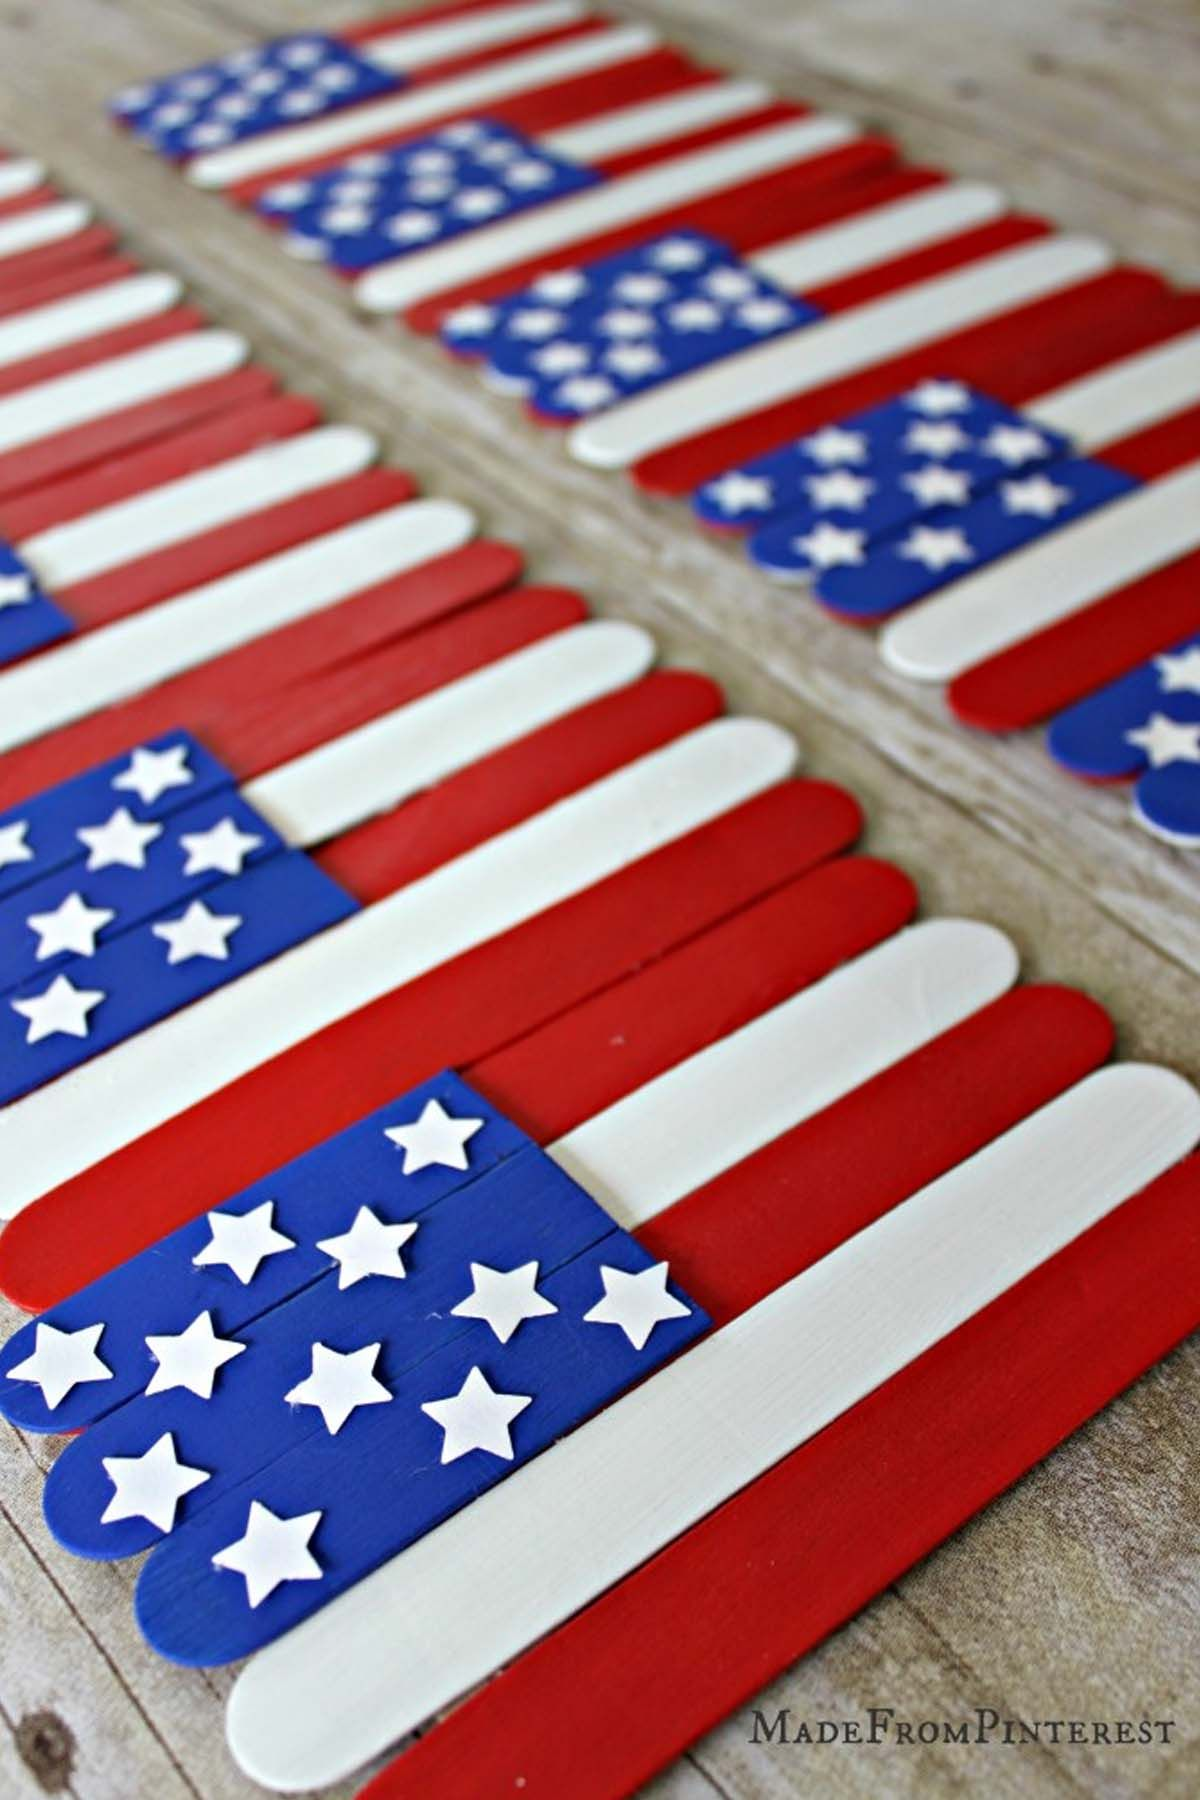 f2c2285d1a2 26 Easy 4th of July Crafts - Patriotic Craft Ideas   DIY Decorations for  Fourth of July